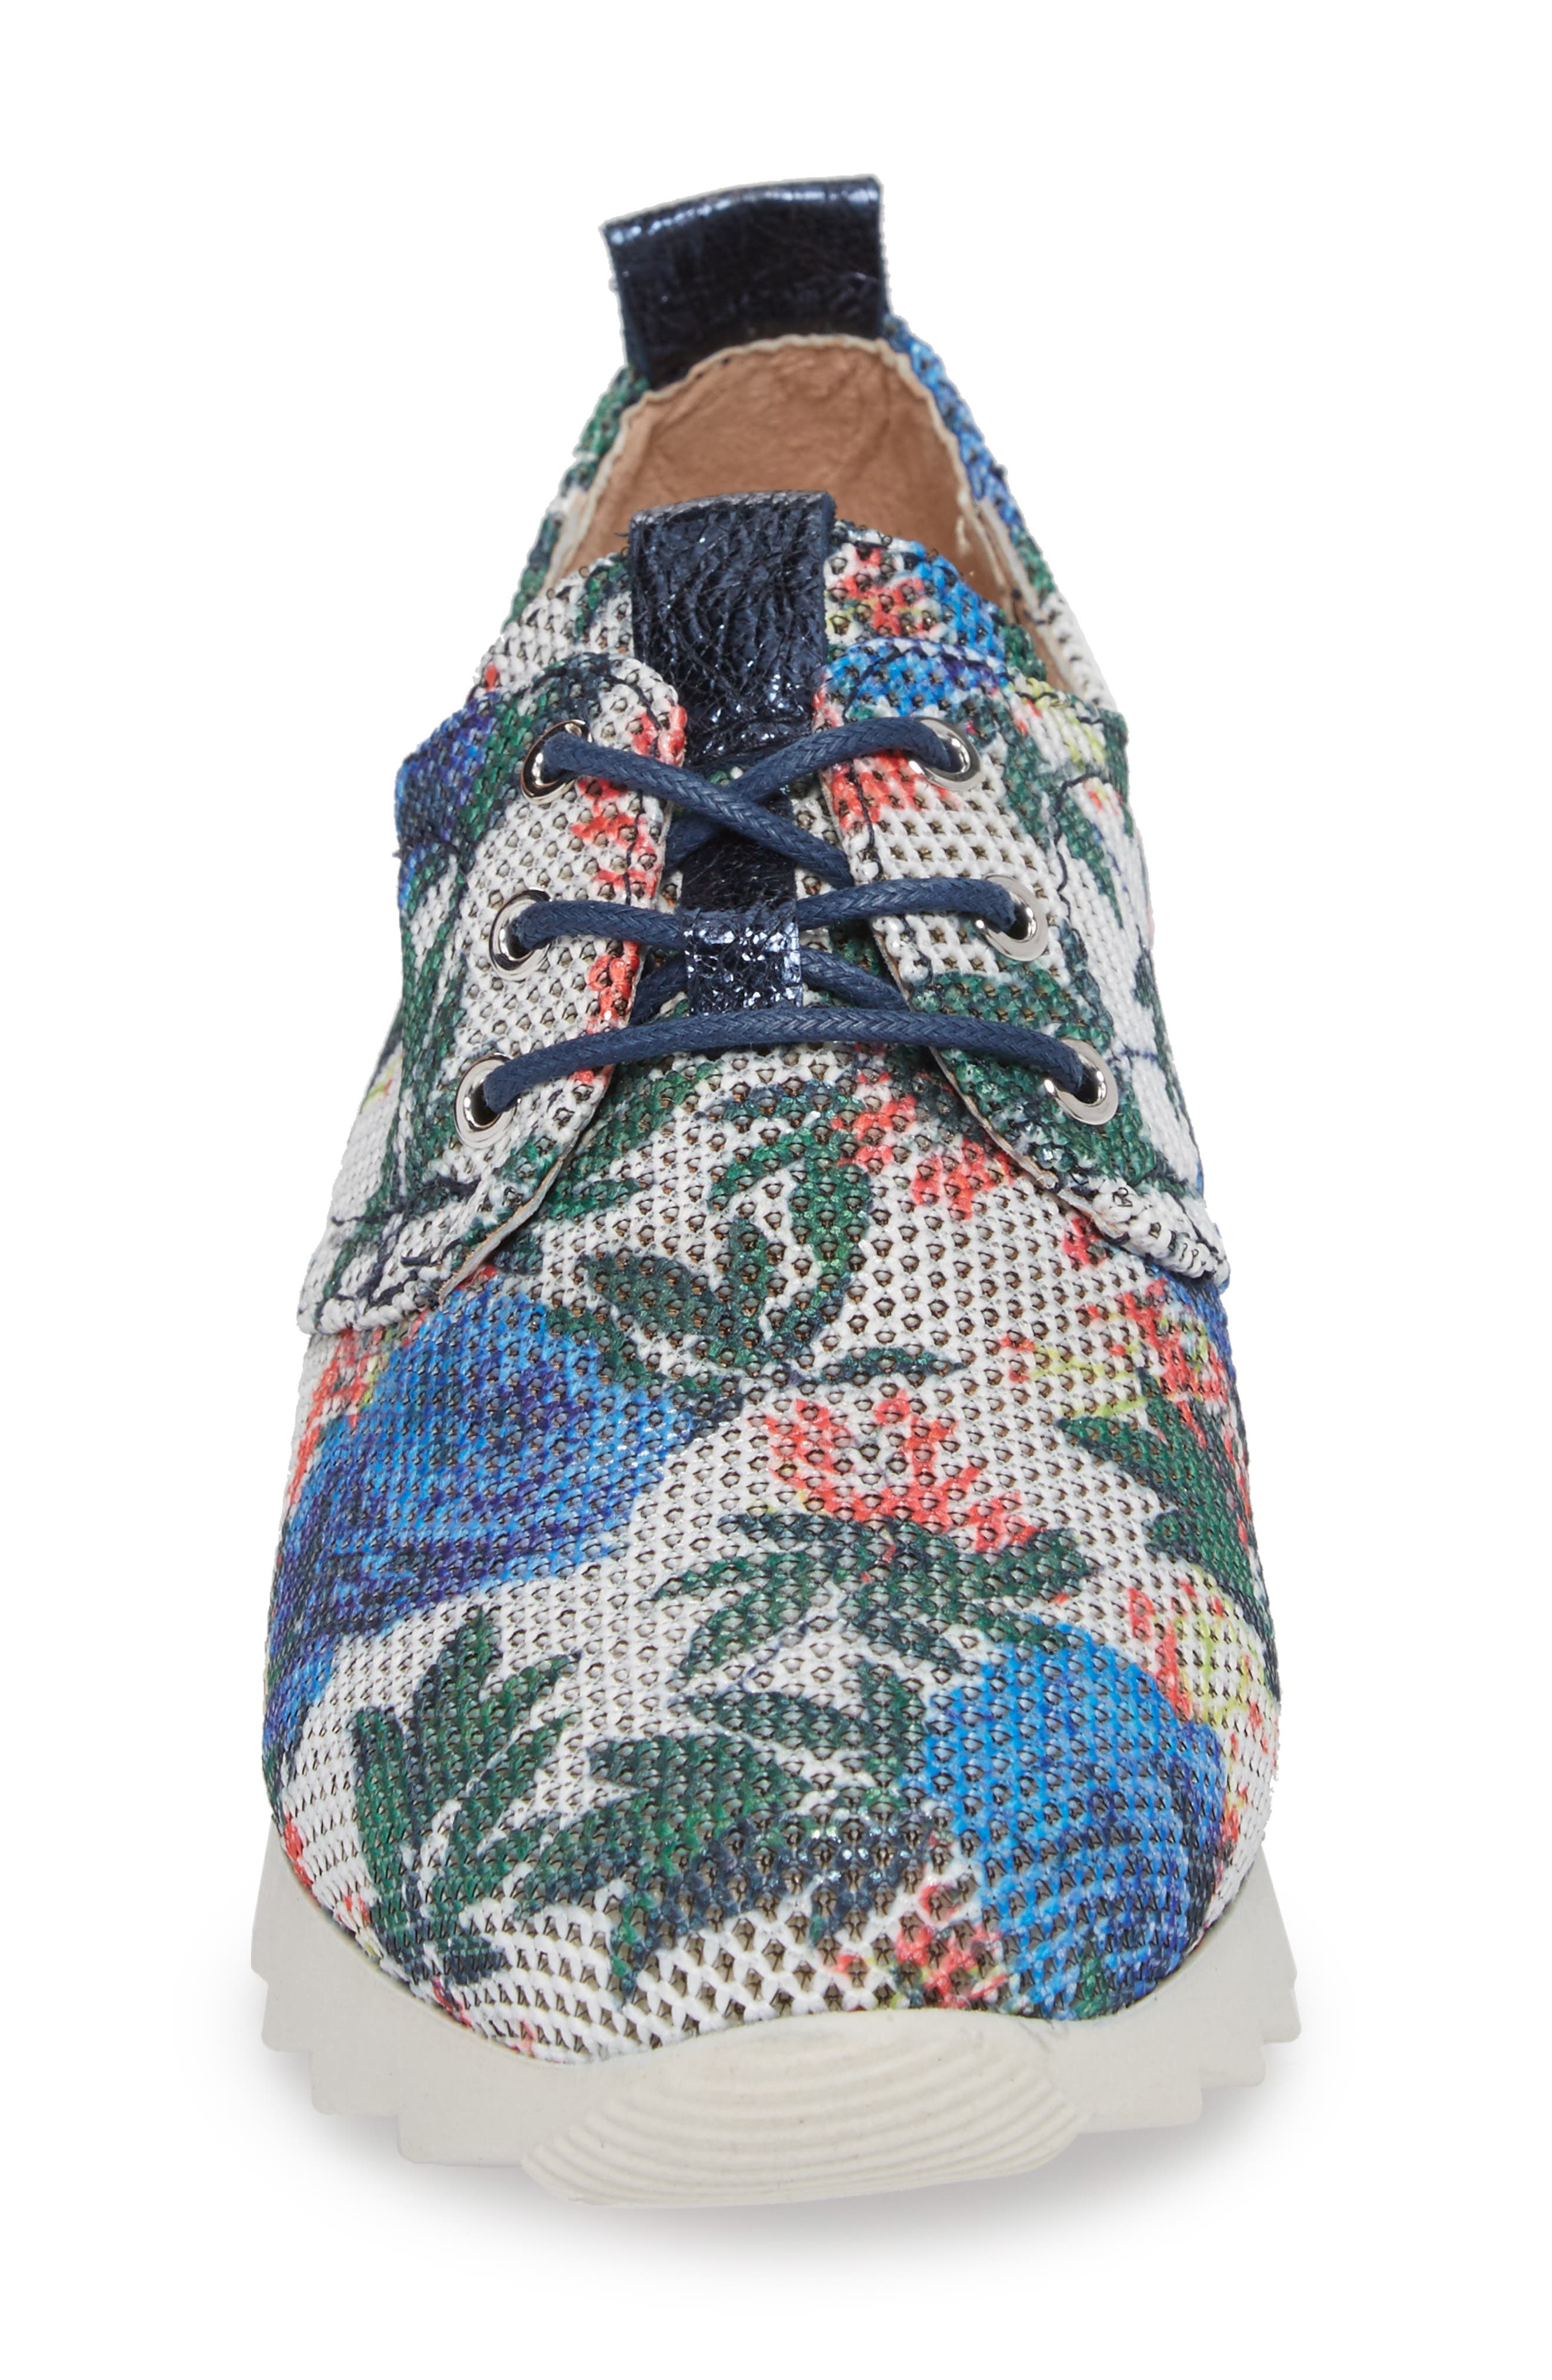 Breezi Perforated Sneaker,                             Alternate thumbnail 4, color,                             GINSEN LEATHER